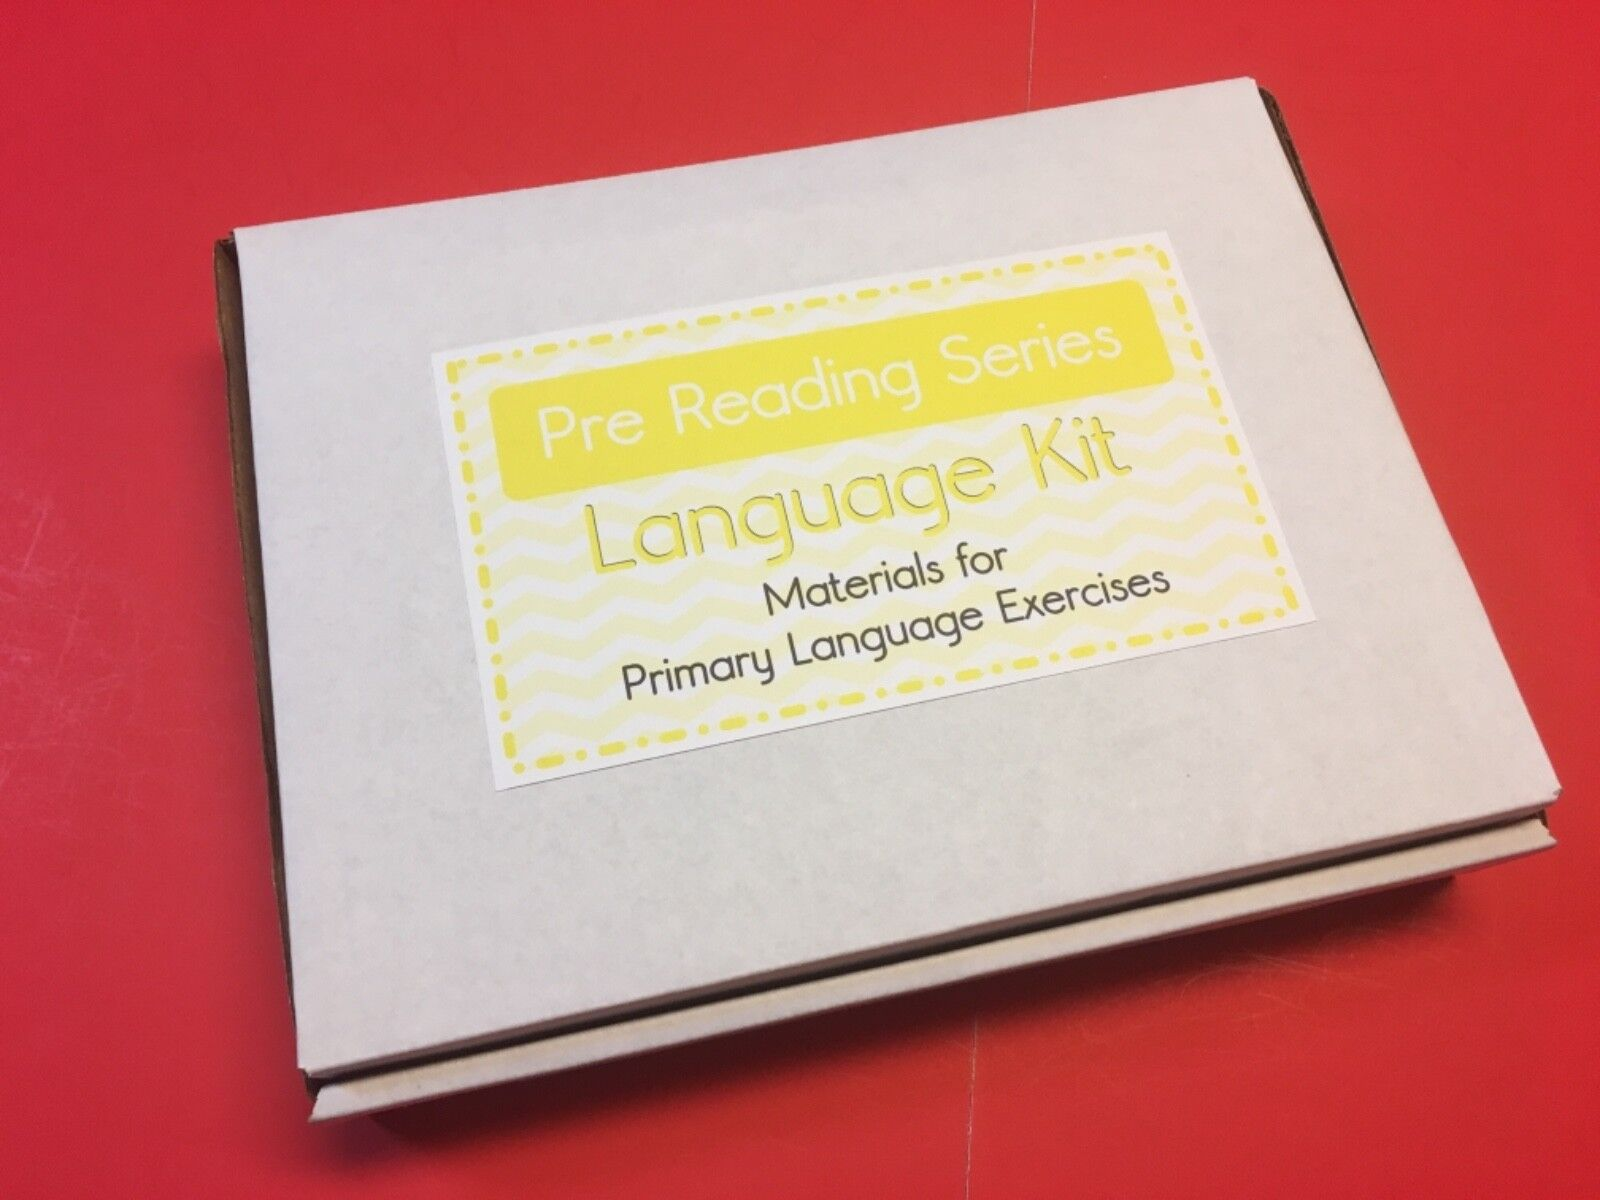 Pre Reading Series Kit  - Montessori Materials for Primary Language Exercises